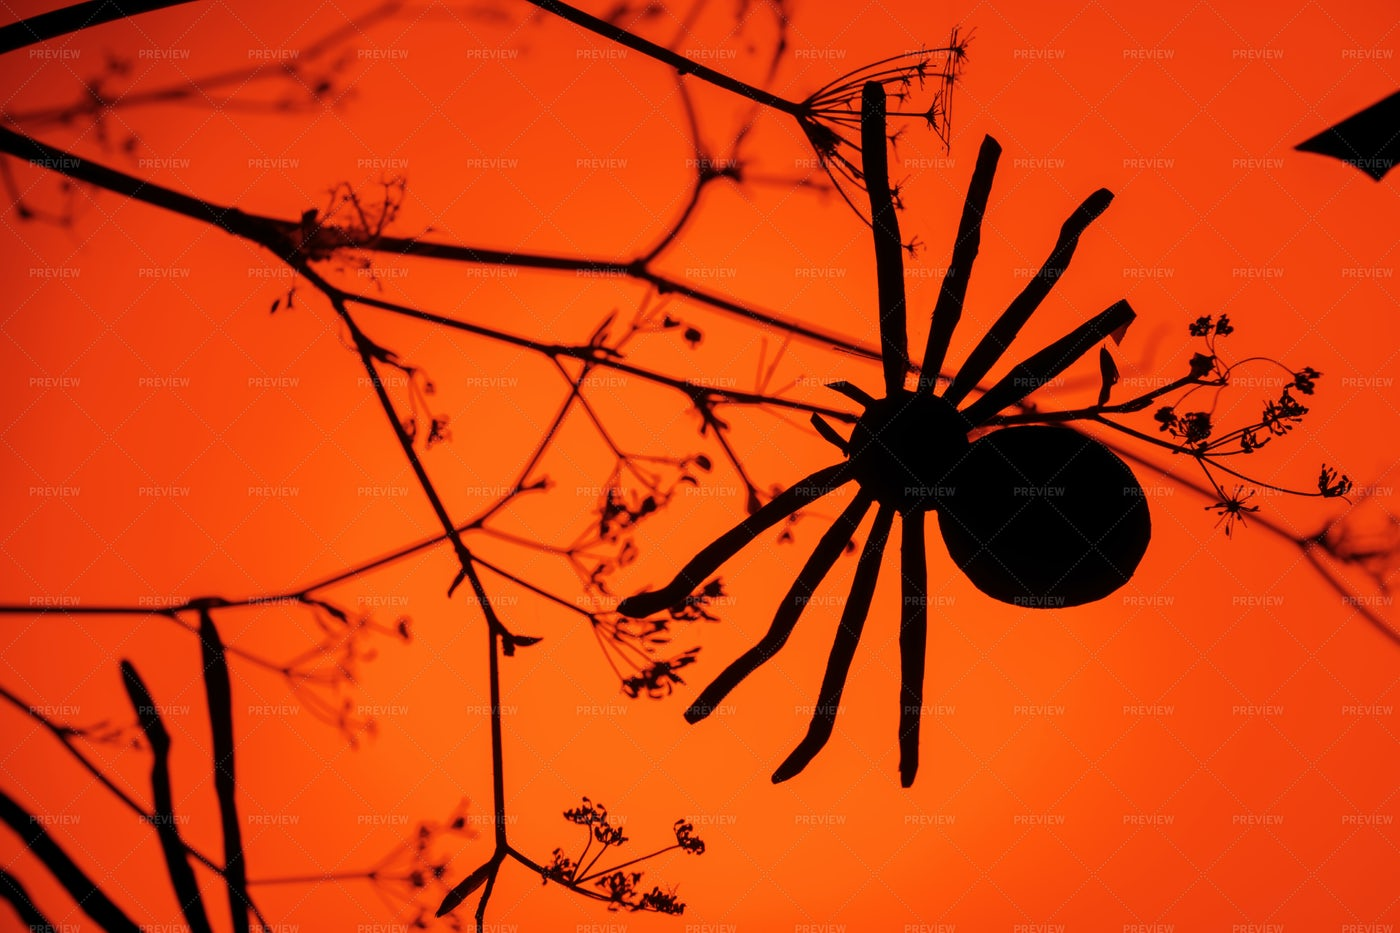 Halloween Paper Spider And Branches: Stock Photos